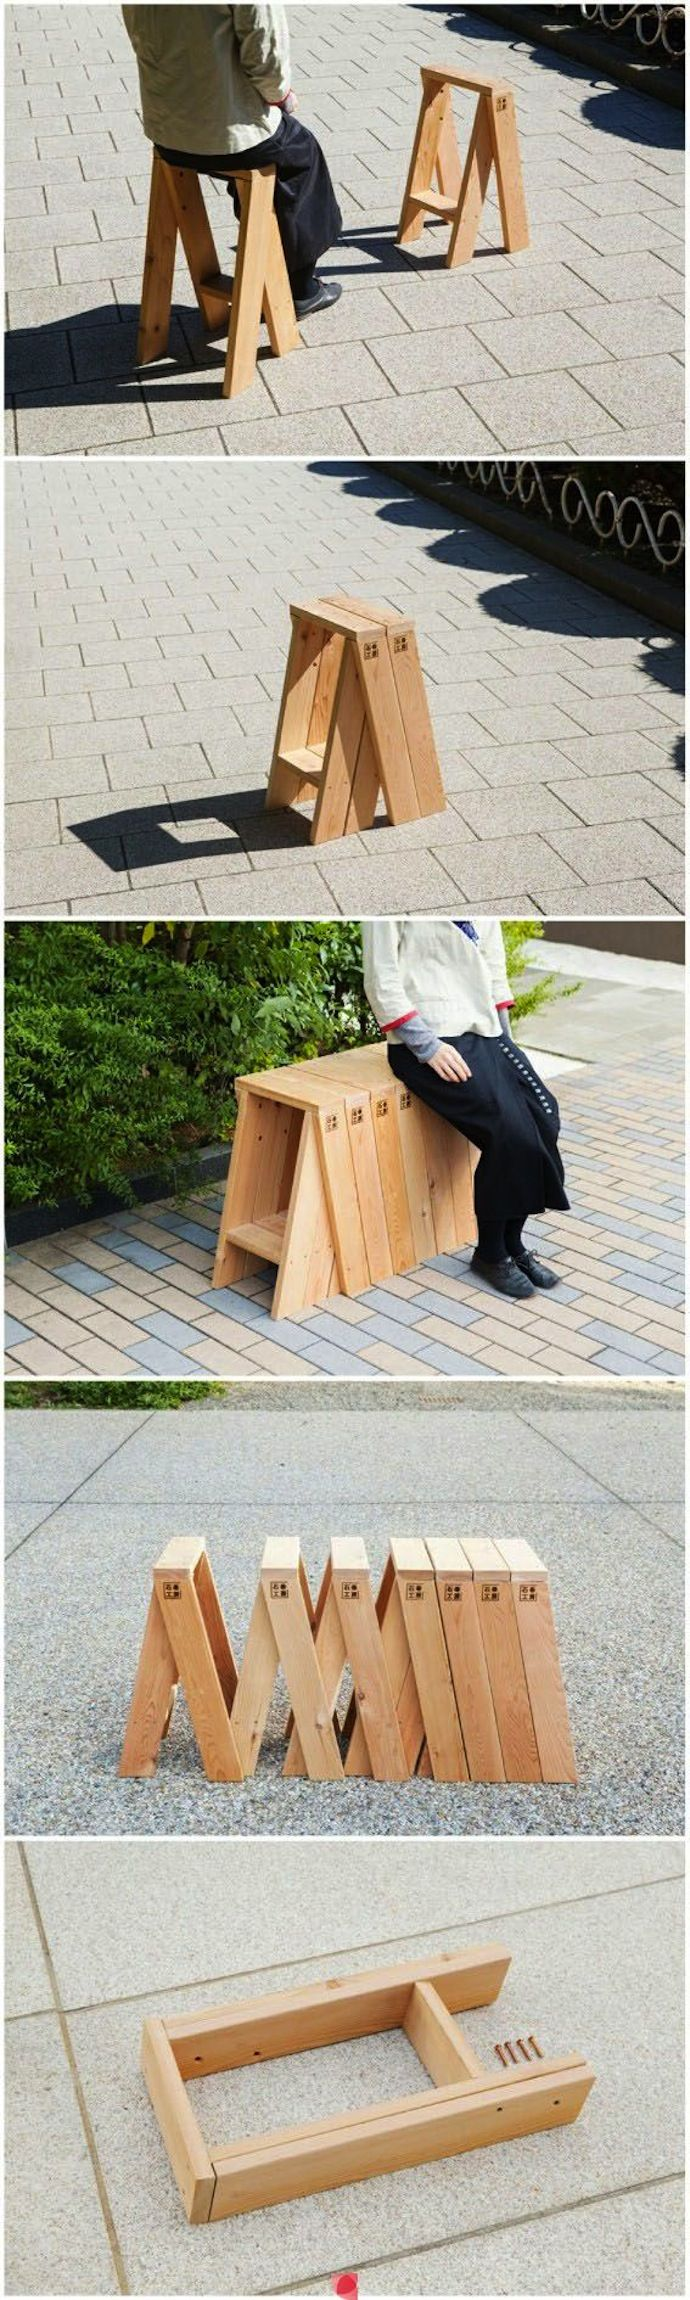 """Ishinomaki